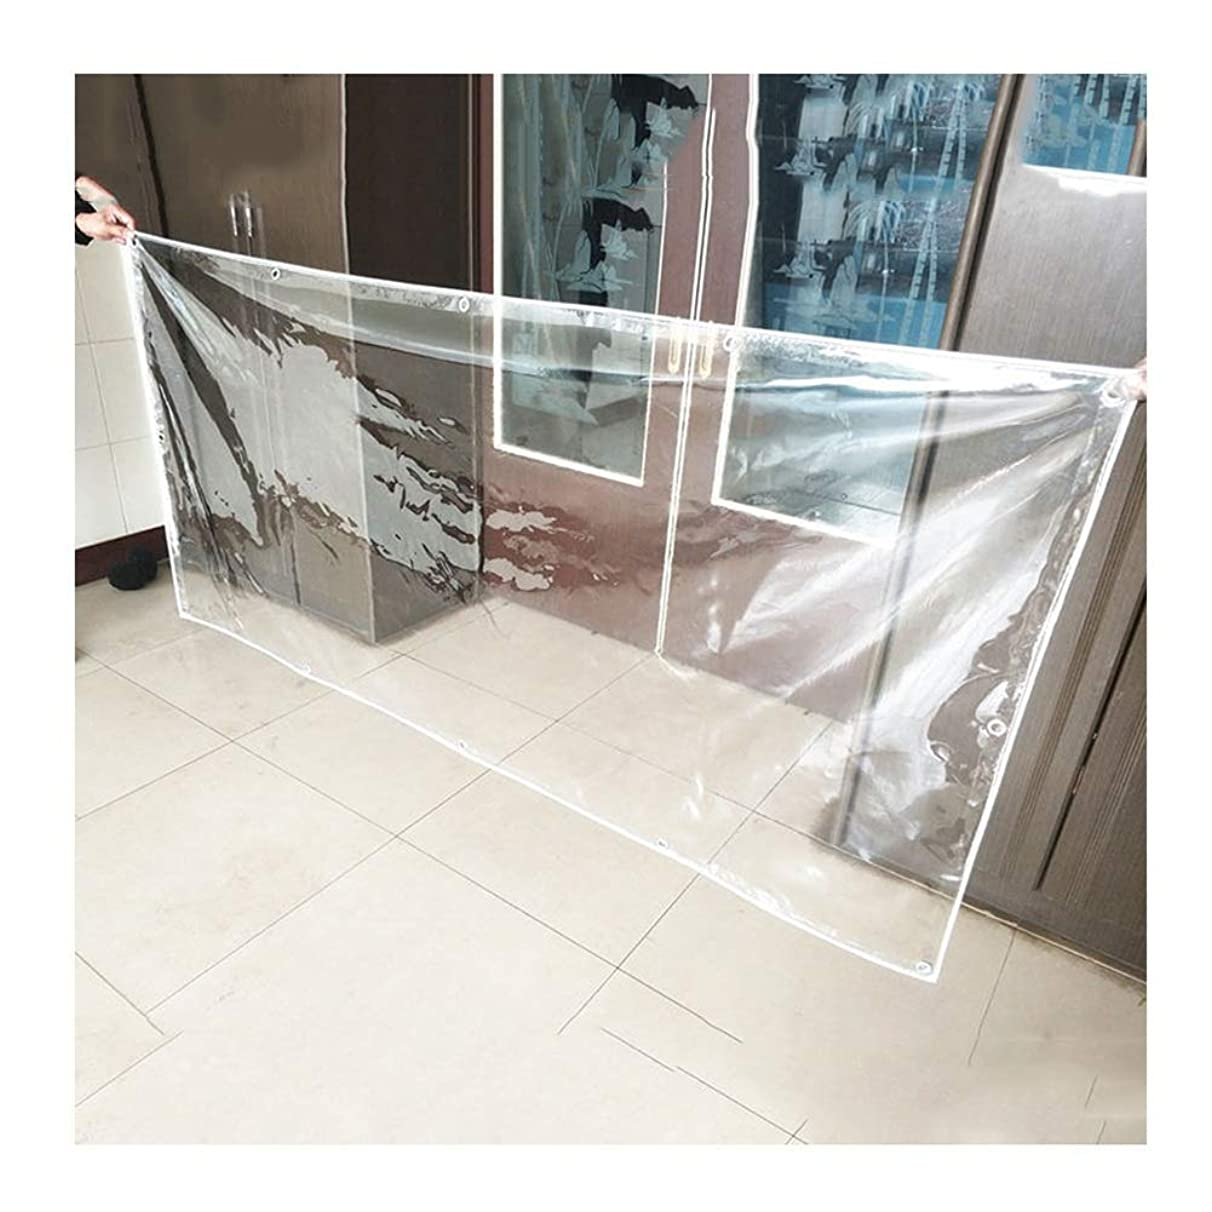 Shade Net/Sunscreen Tarpaulin Waterproof Heavy Duty Outdoor Rainproof Cloth Balcony Cover, Multiple Sizes Available, WenMing Yue, Clear, 2X2.5M